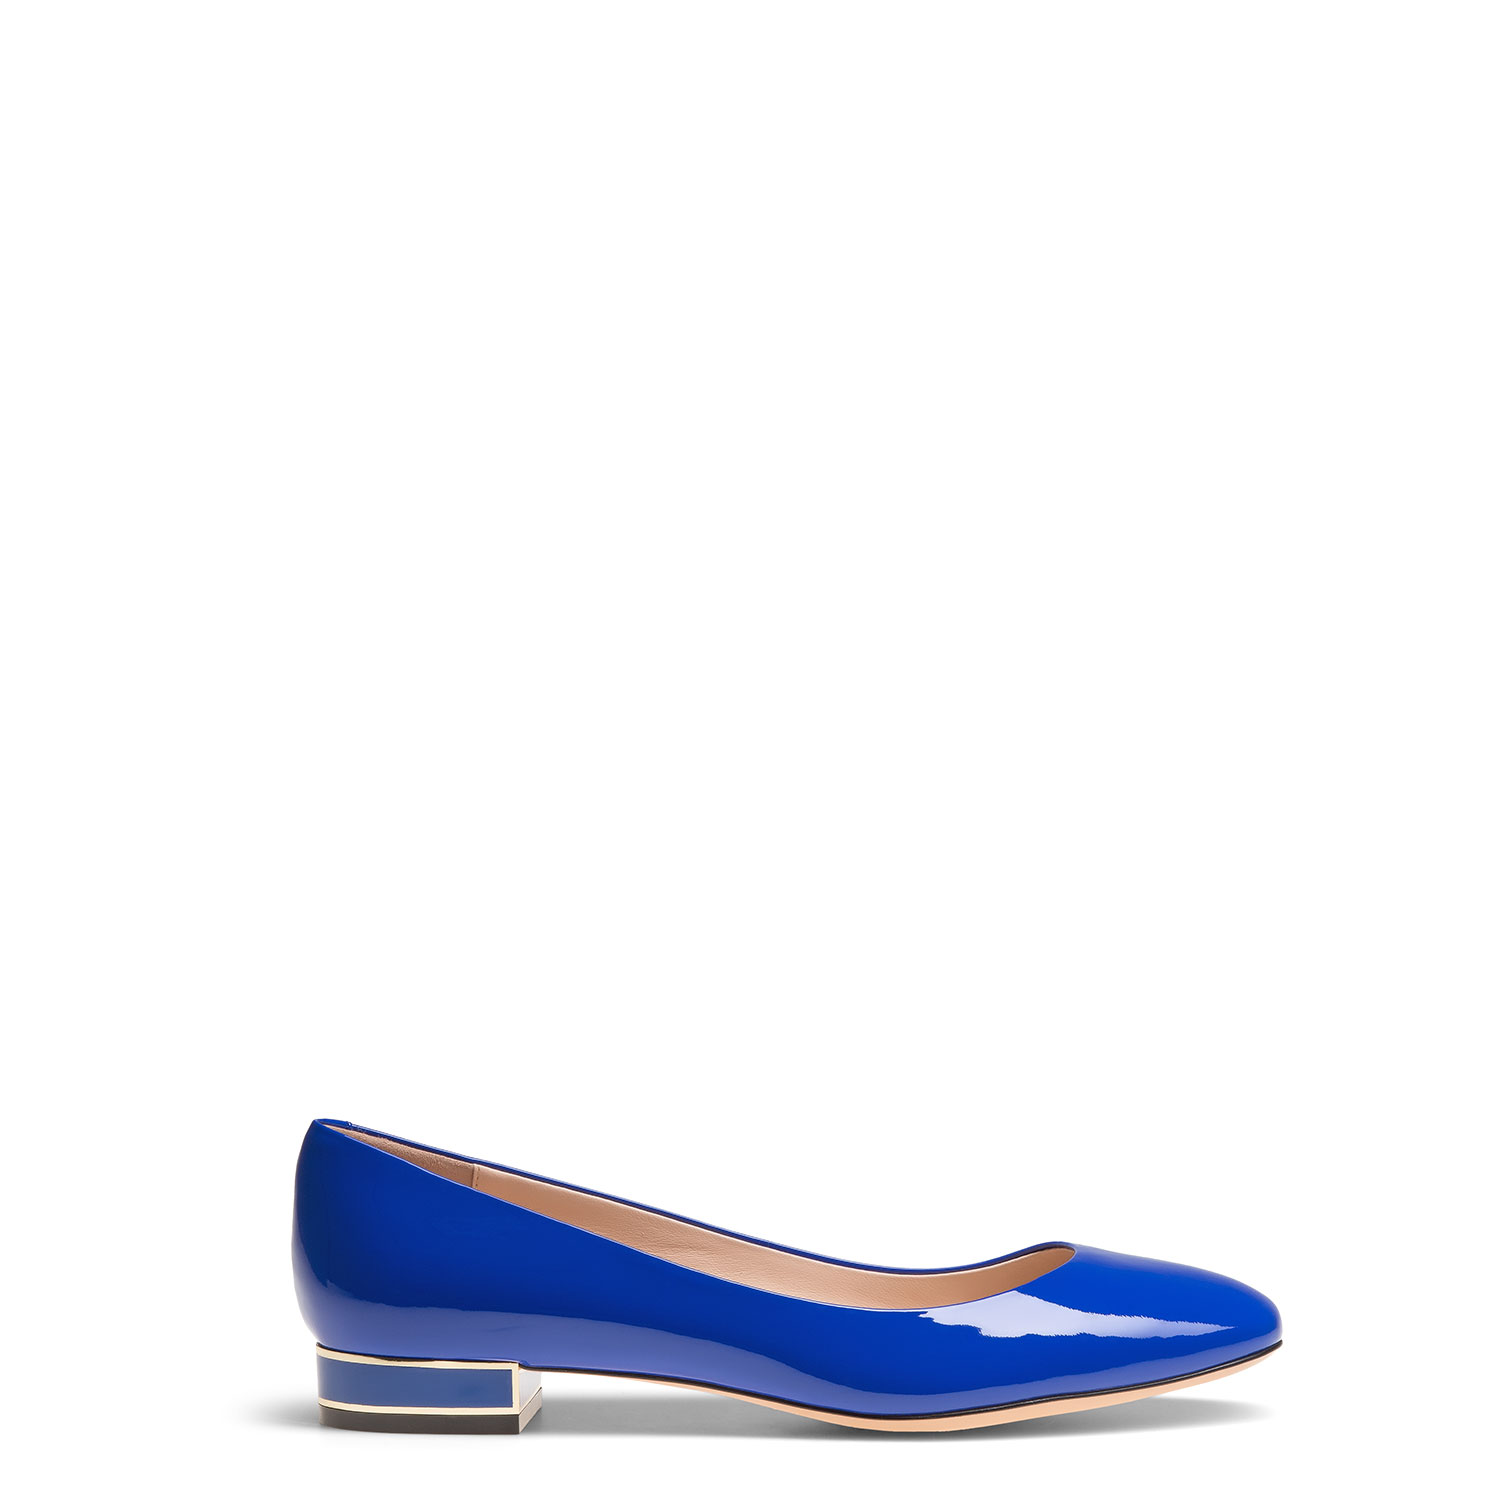 Women's shoes CARLO PAZOLINI FL-ANG5-6